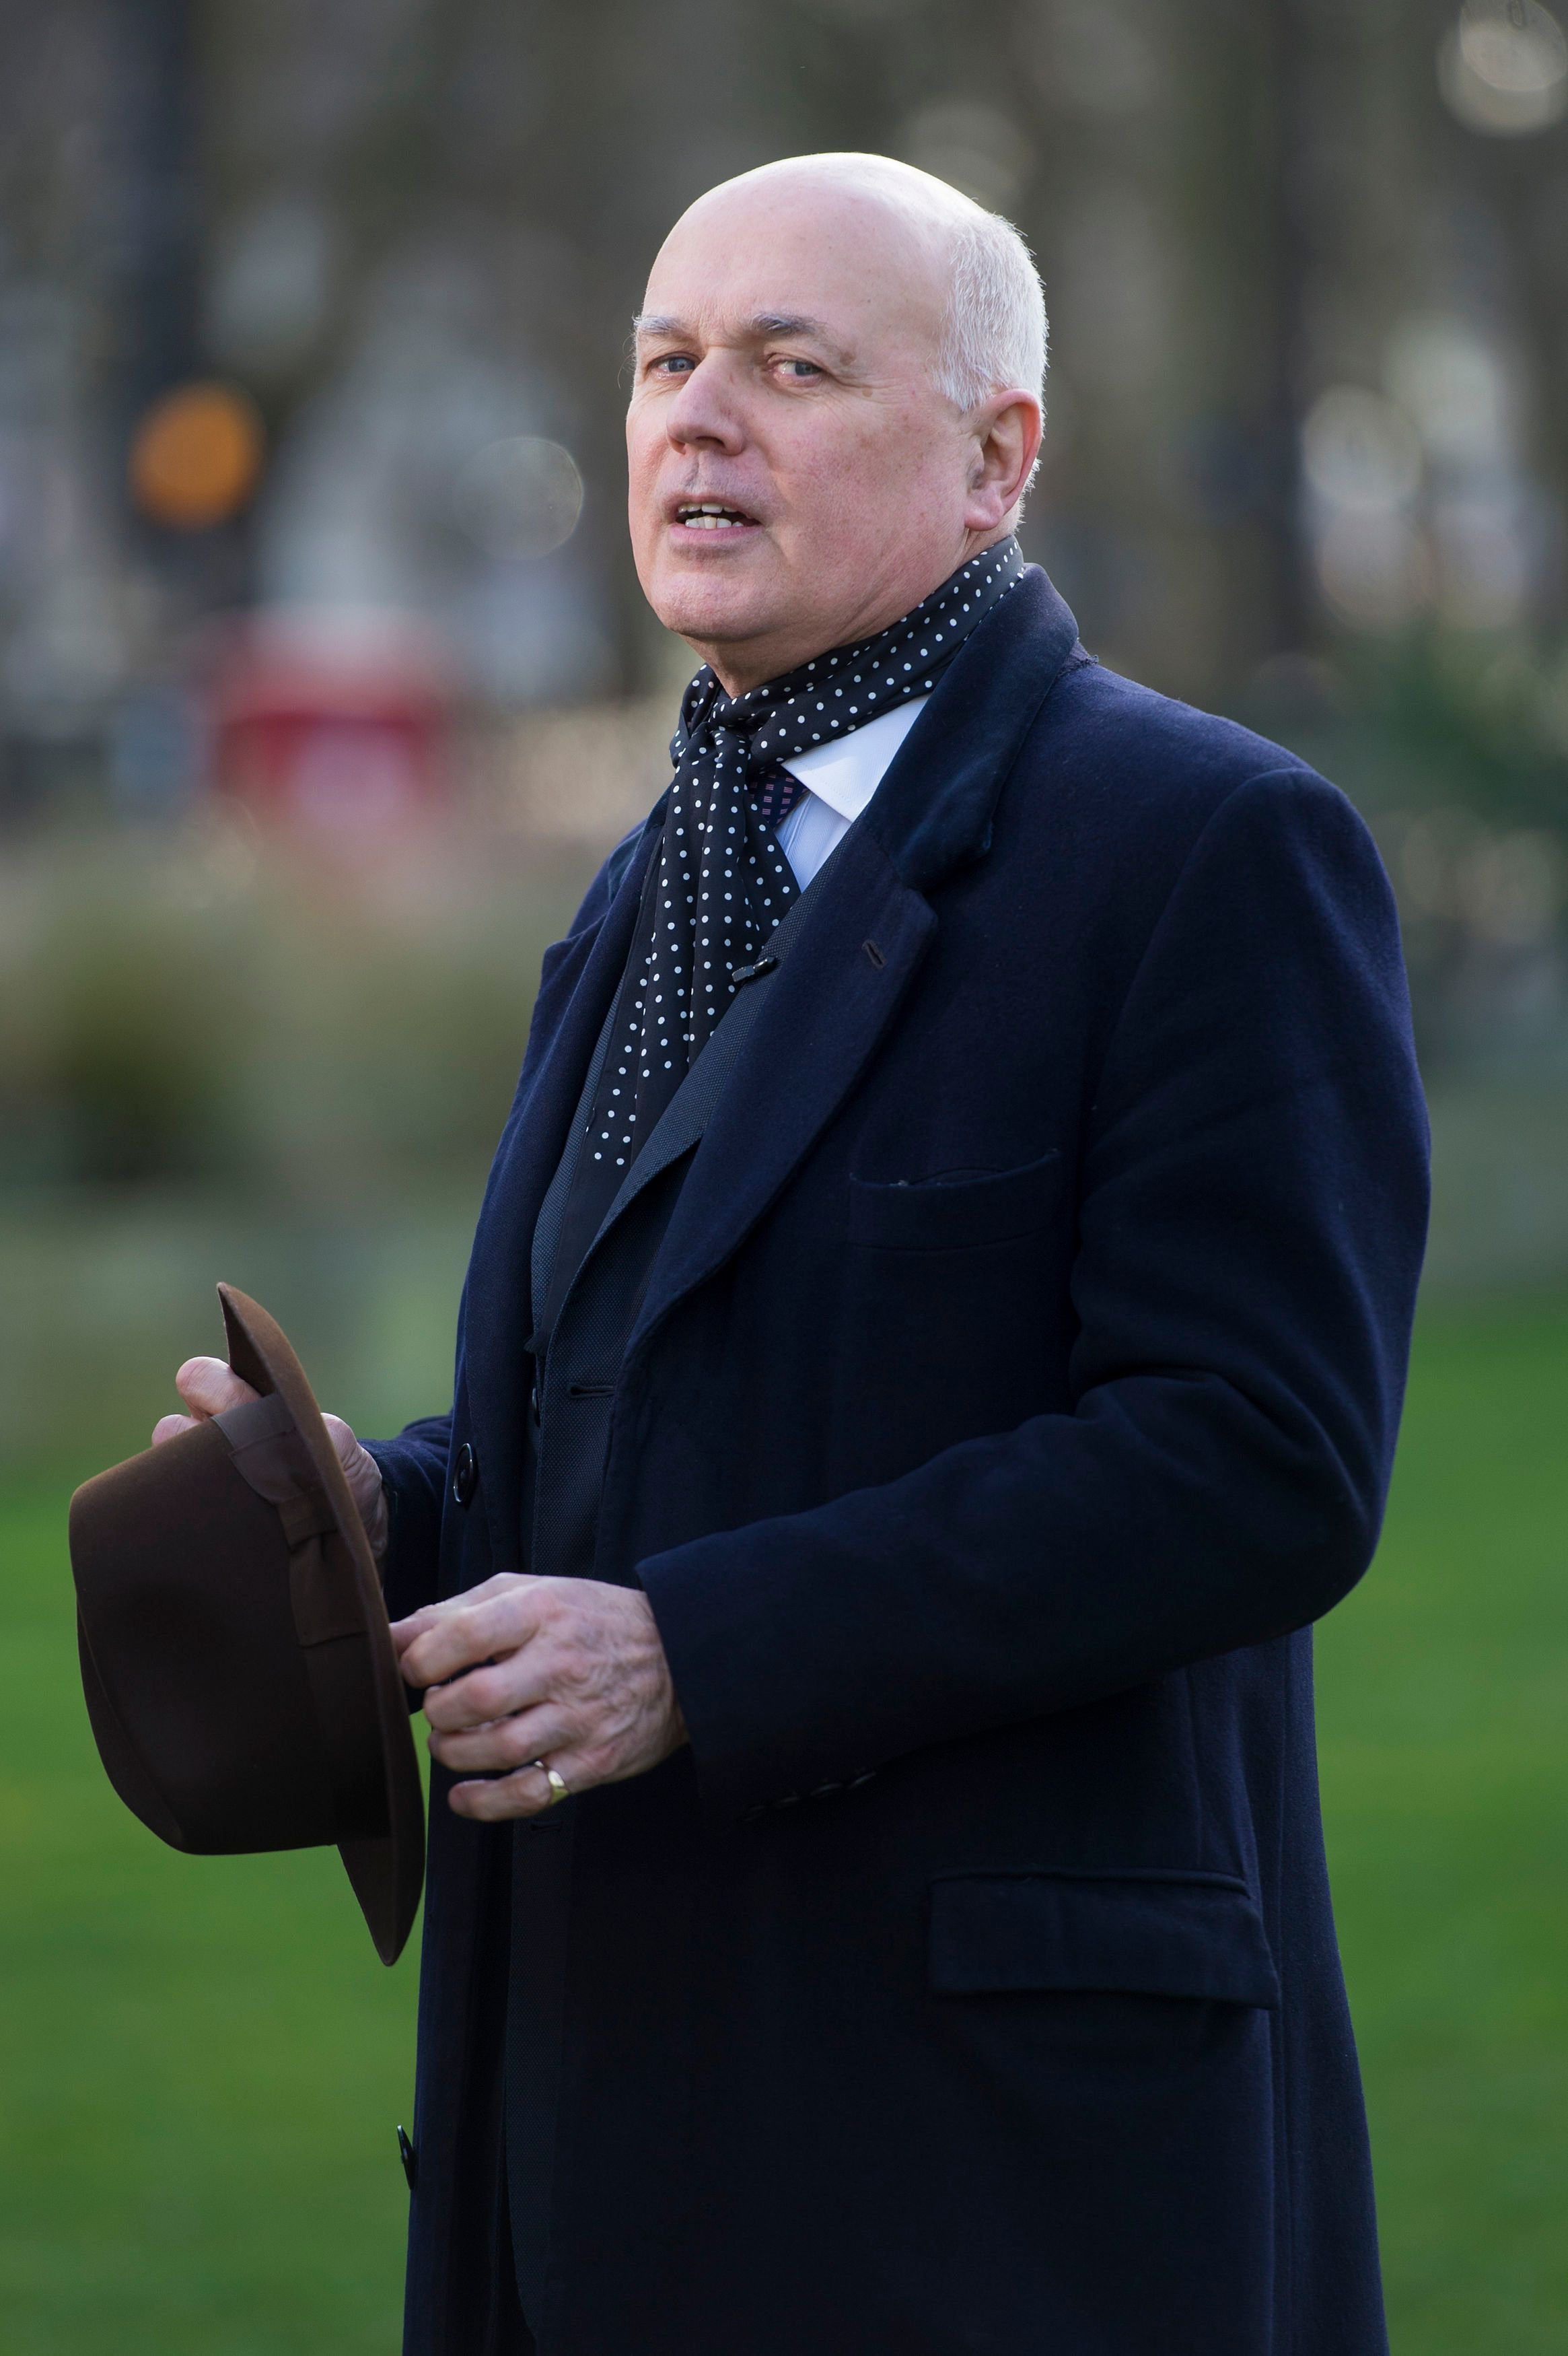 Iain Duncan Smith Claims It Is 'Ridiculous To Go On About Jobs' Amid No-Deal Brexit